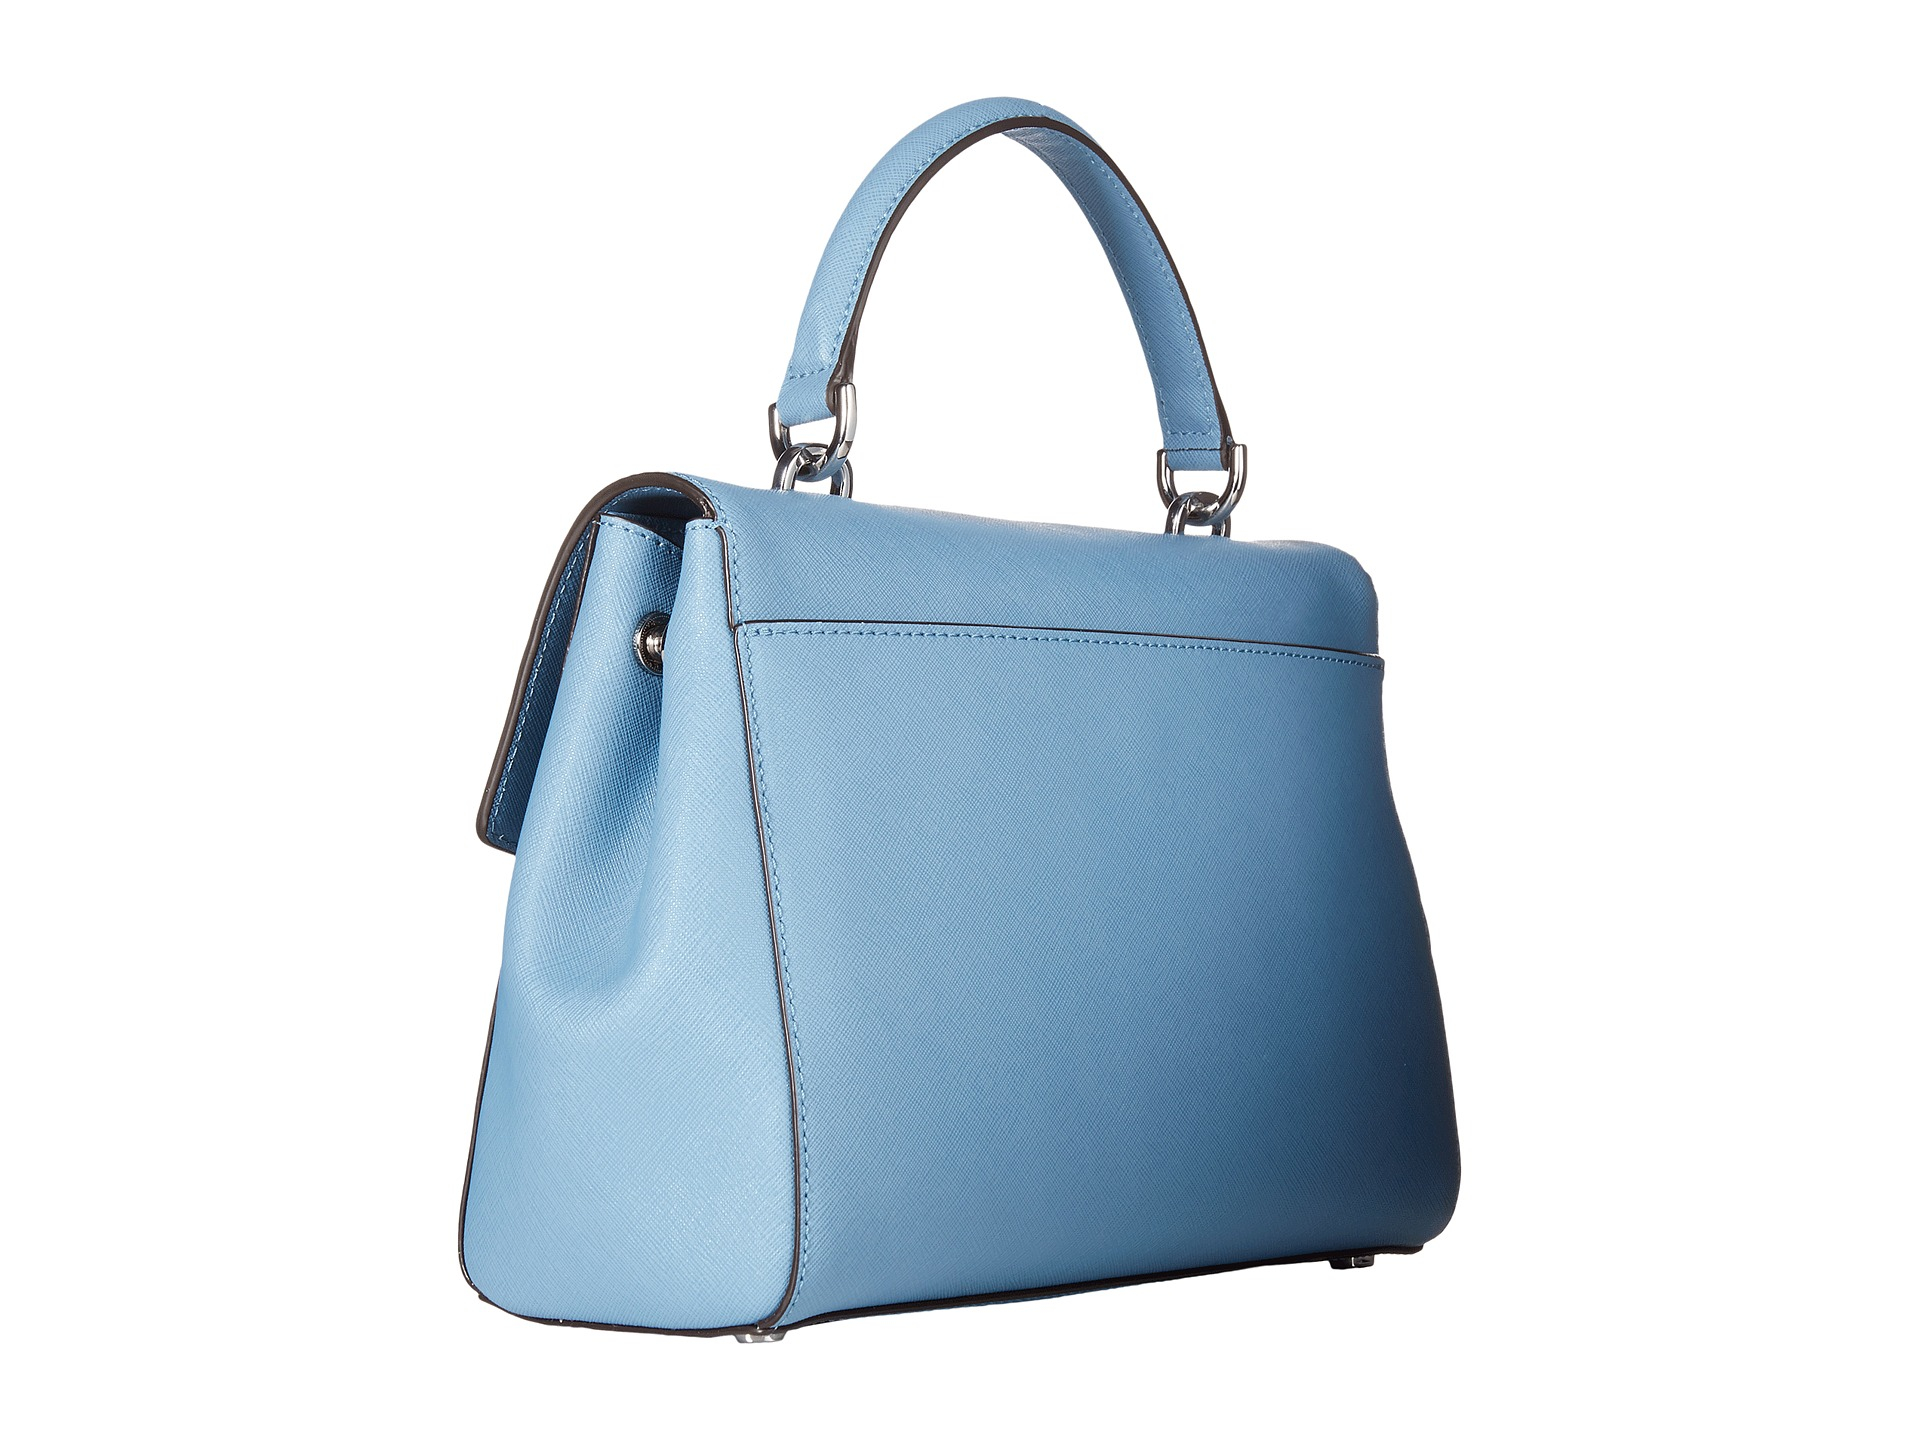 6d8c9491d86e ... discount code for lyst michael michael kors ava medium th satchel in  blue 33e95 ab0ae